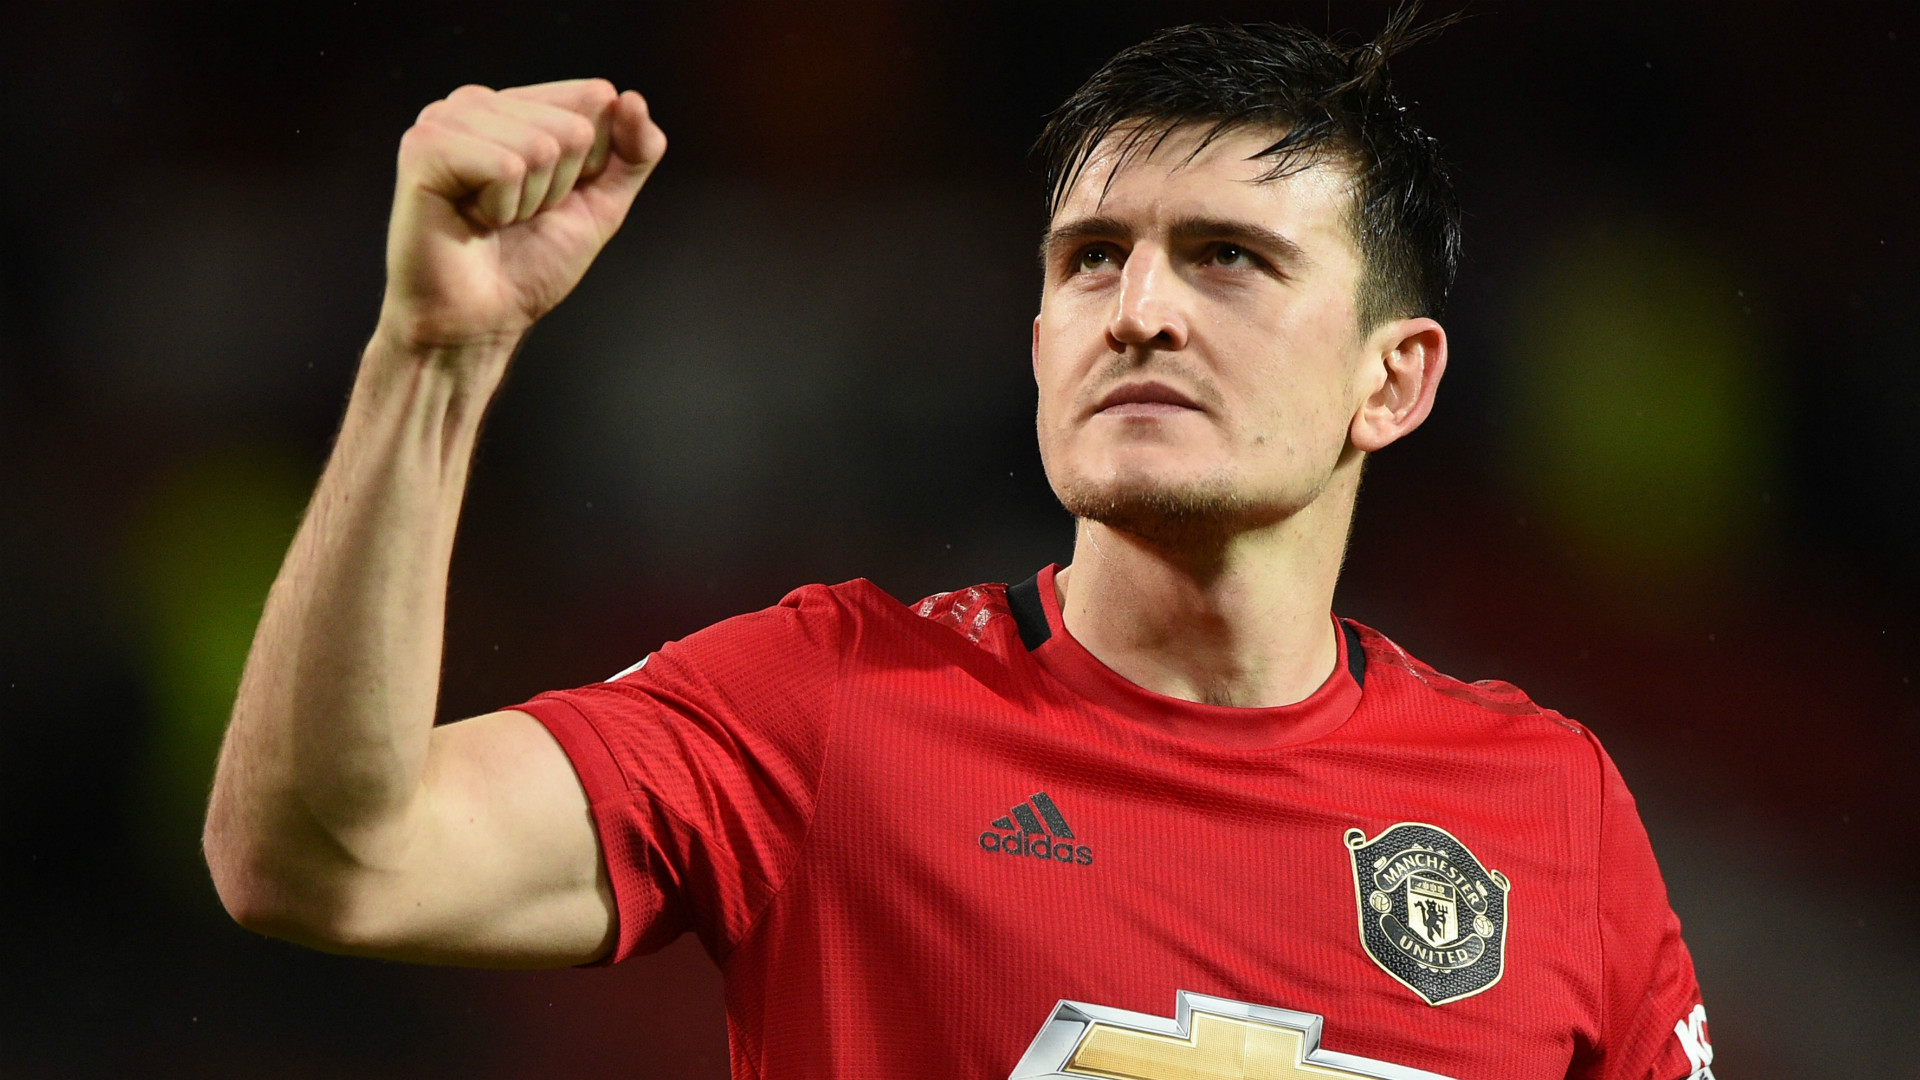 'Pochettino was all over Maguire' – Spurs wanted Man Utd's £80m defender, says Rose